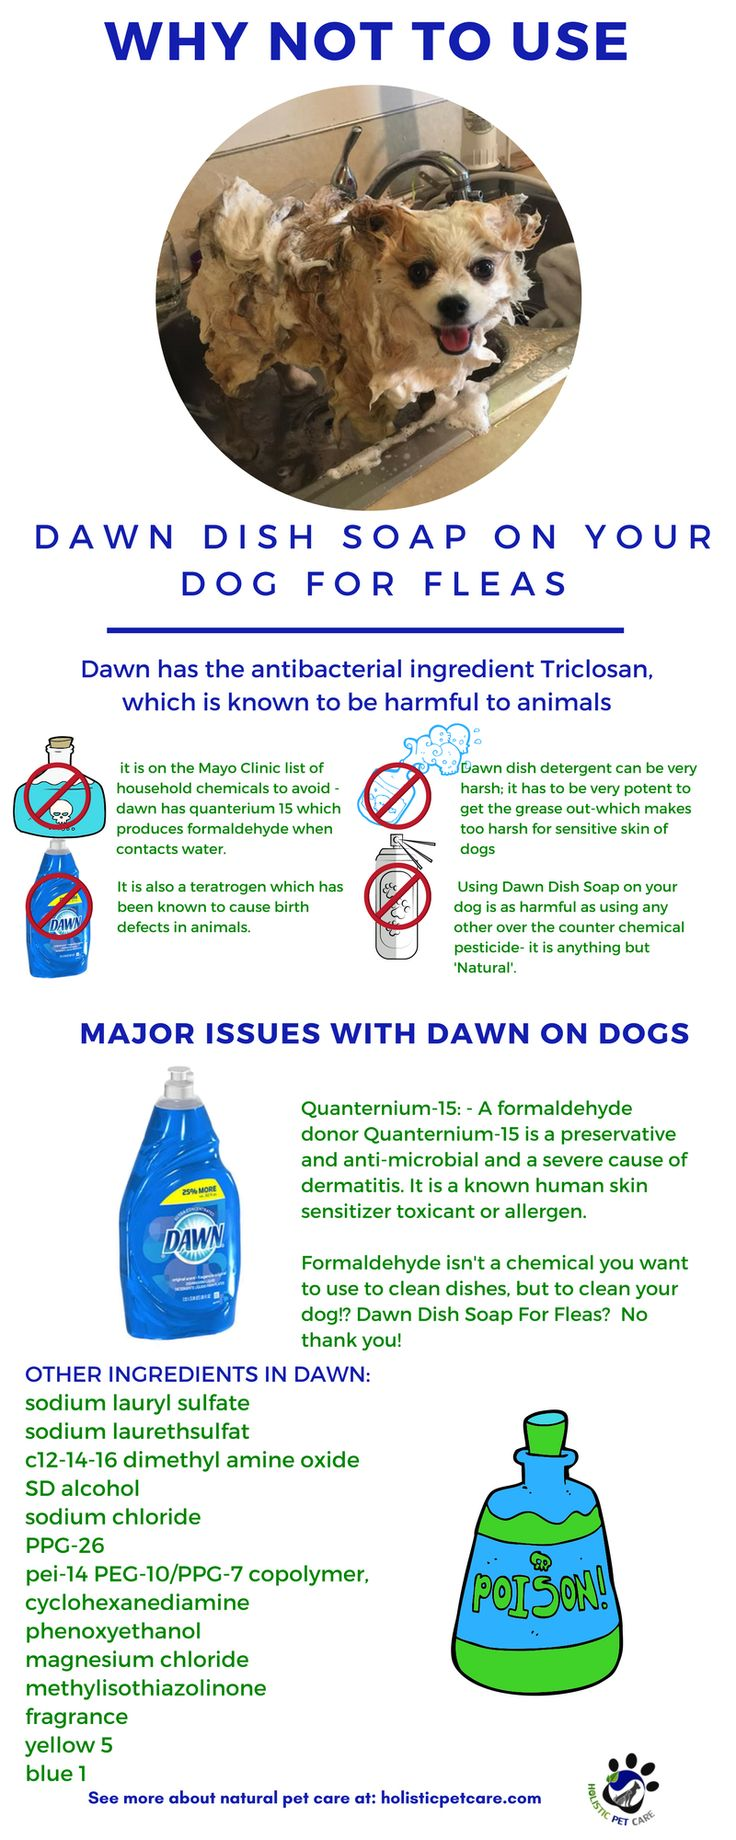 Do Not use Dawn Dish soap on your pet, please! Dawn dish